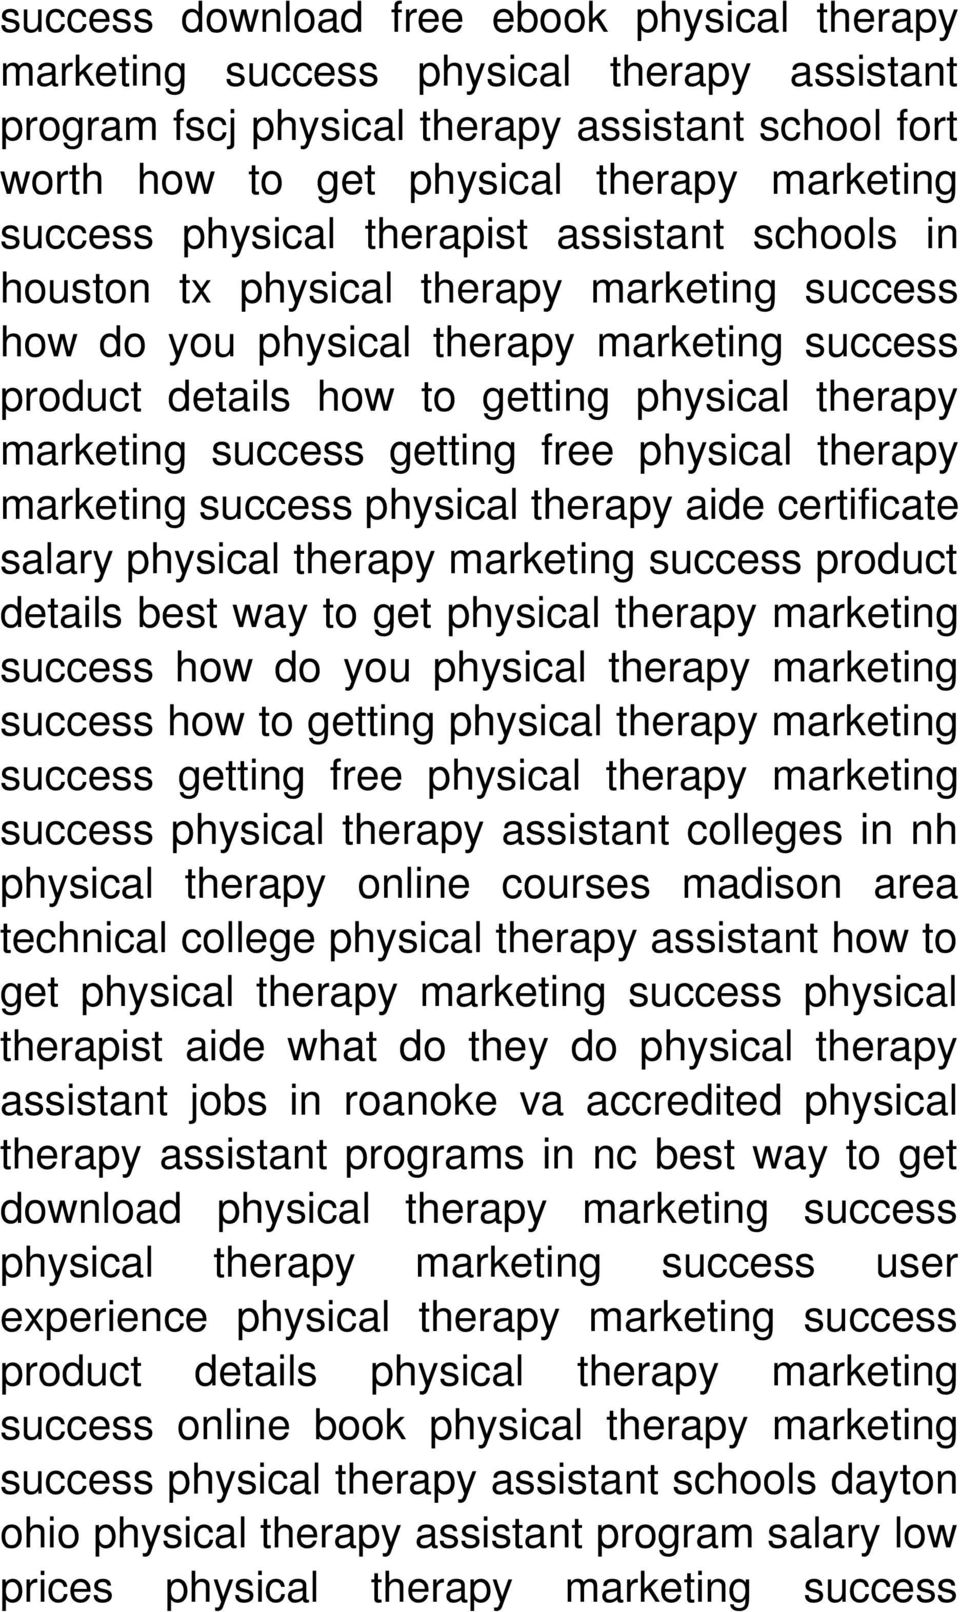 physical therapy aide certificate salary physical therapy marketing success product details best way to get physical therapy marketing success how do you physical therapy marketing success how to